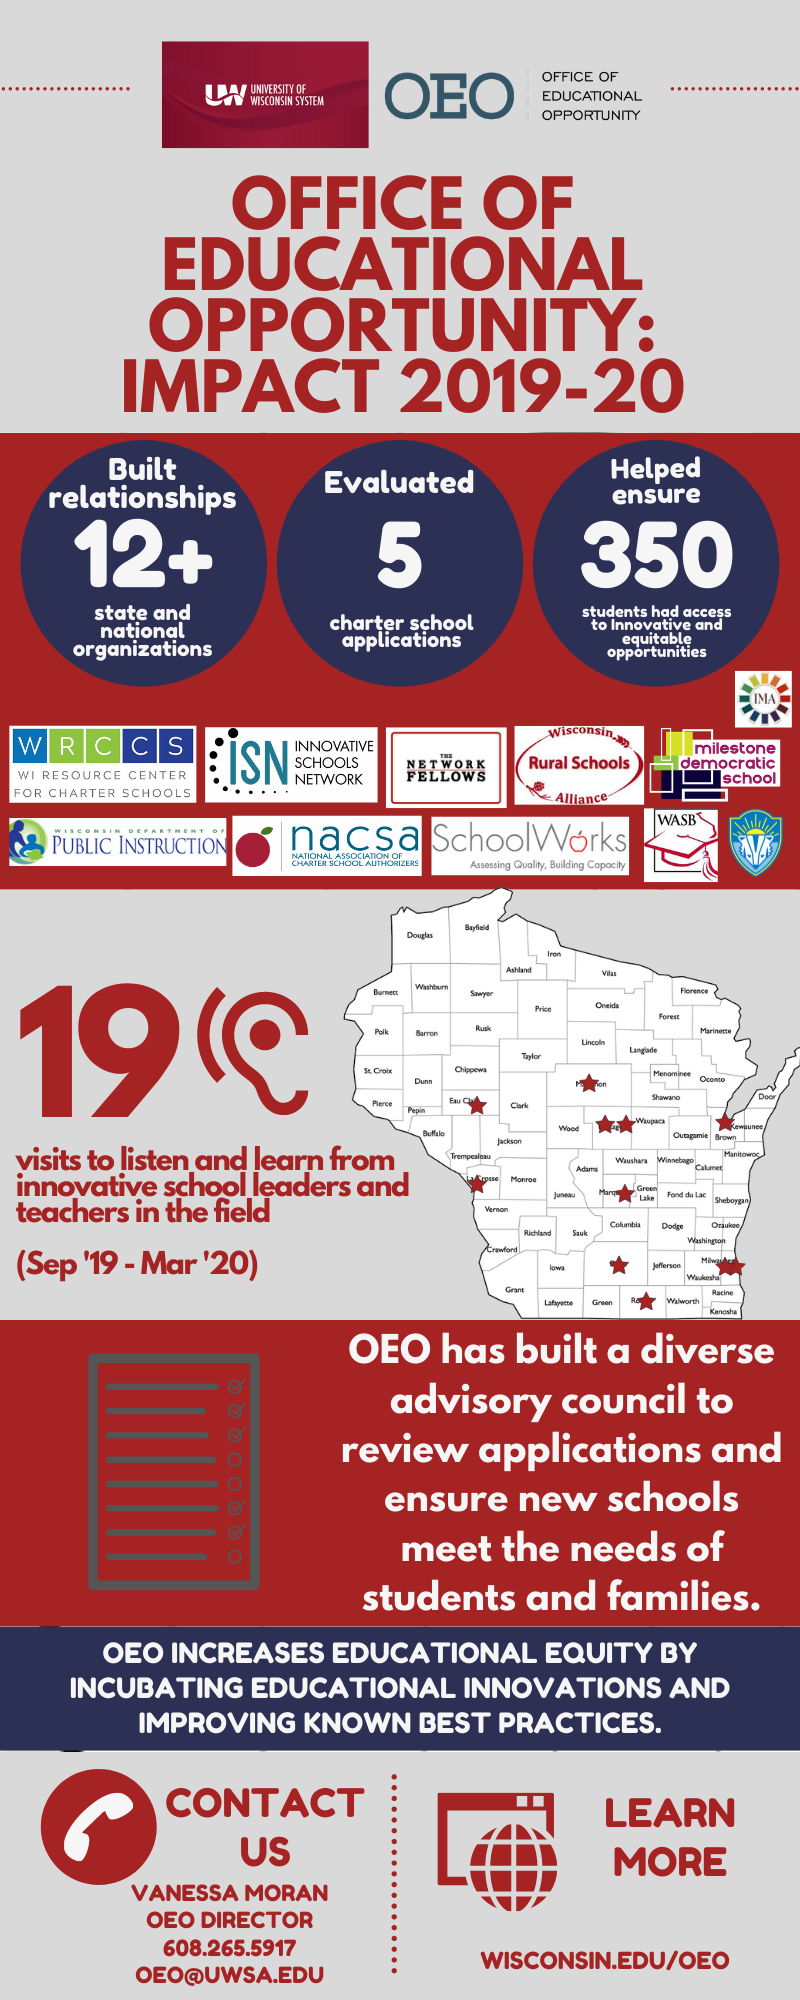 Office of Educational Opportunity Impact image